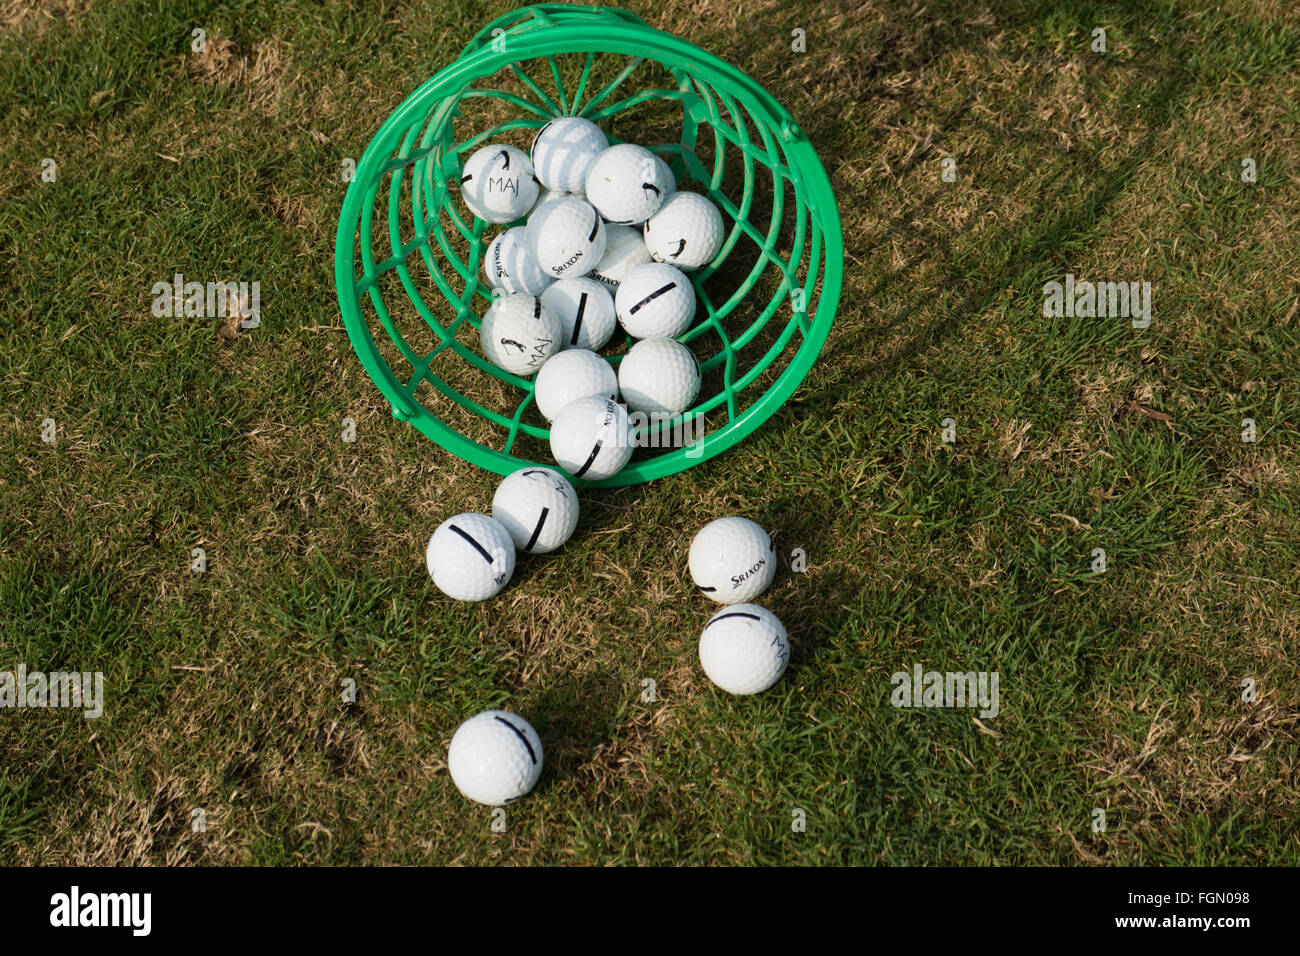 Balls tumbled from basket on driving range of golf club.Stock Photo